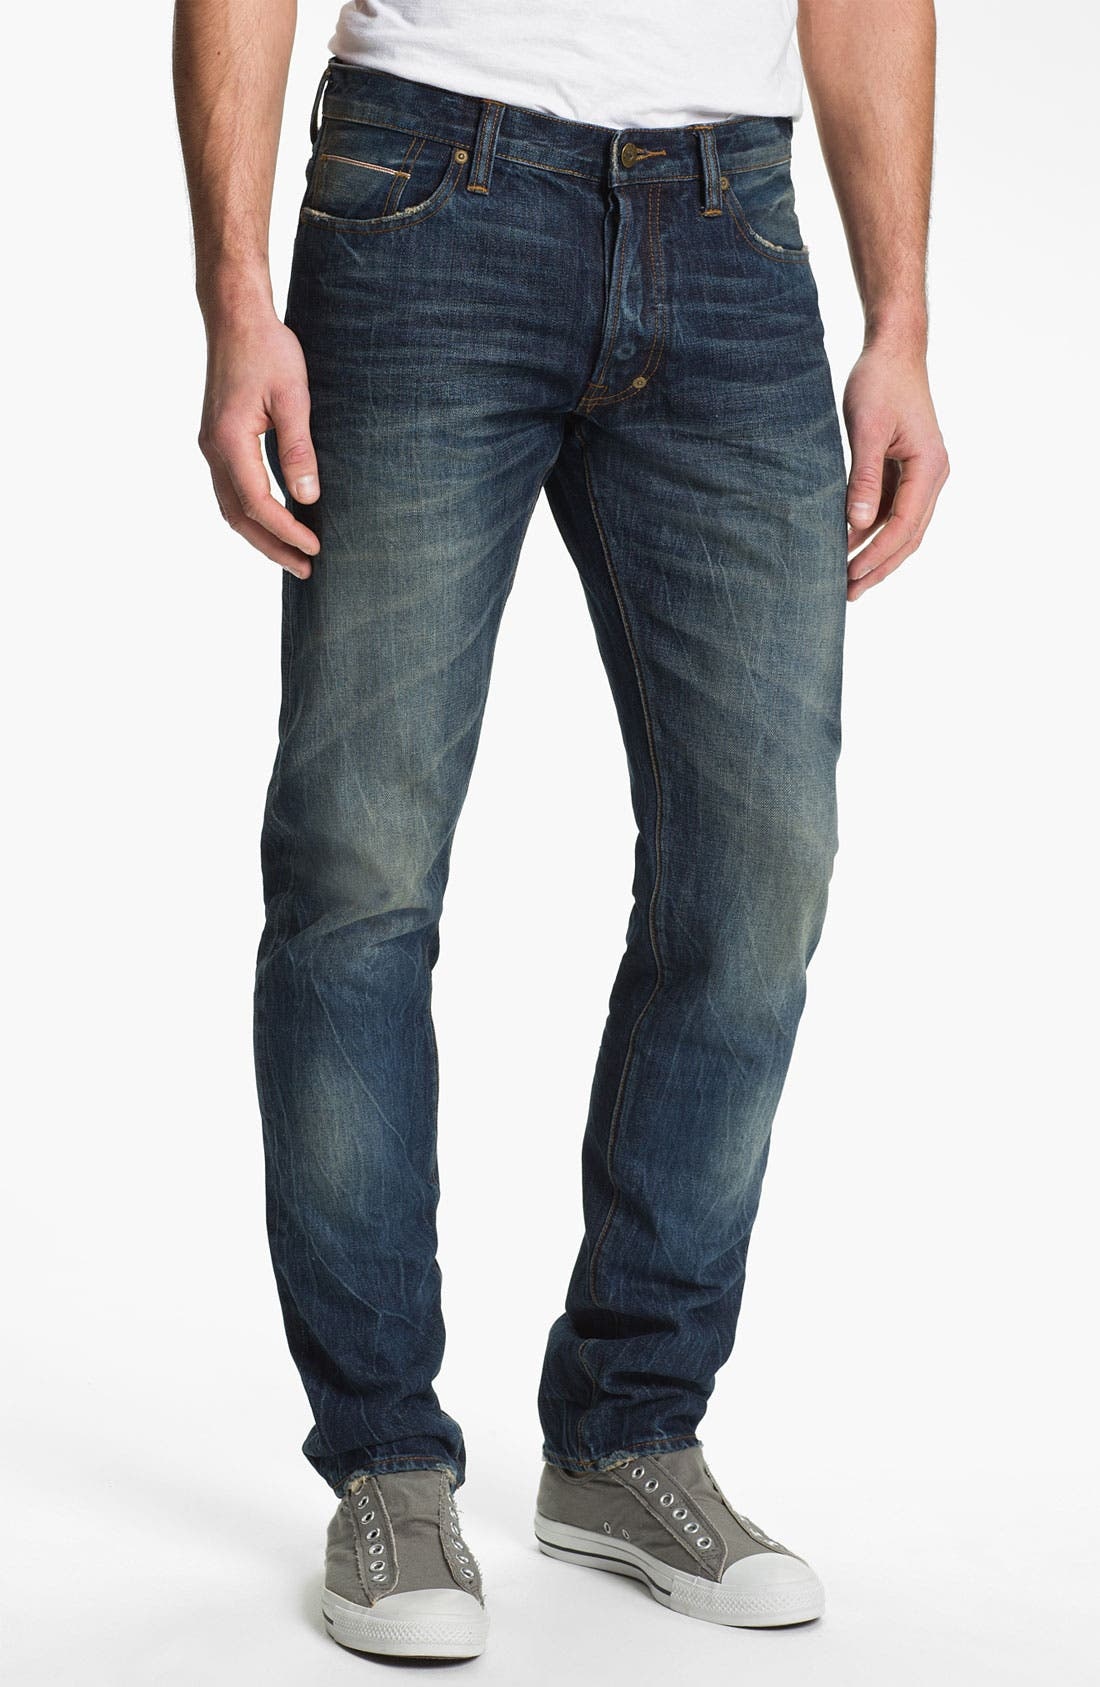 Alternate Image 1 Selected - PRPS 'Barracuda' Straight Leg Selvedge Jeans (1 Year)